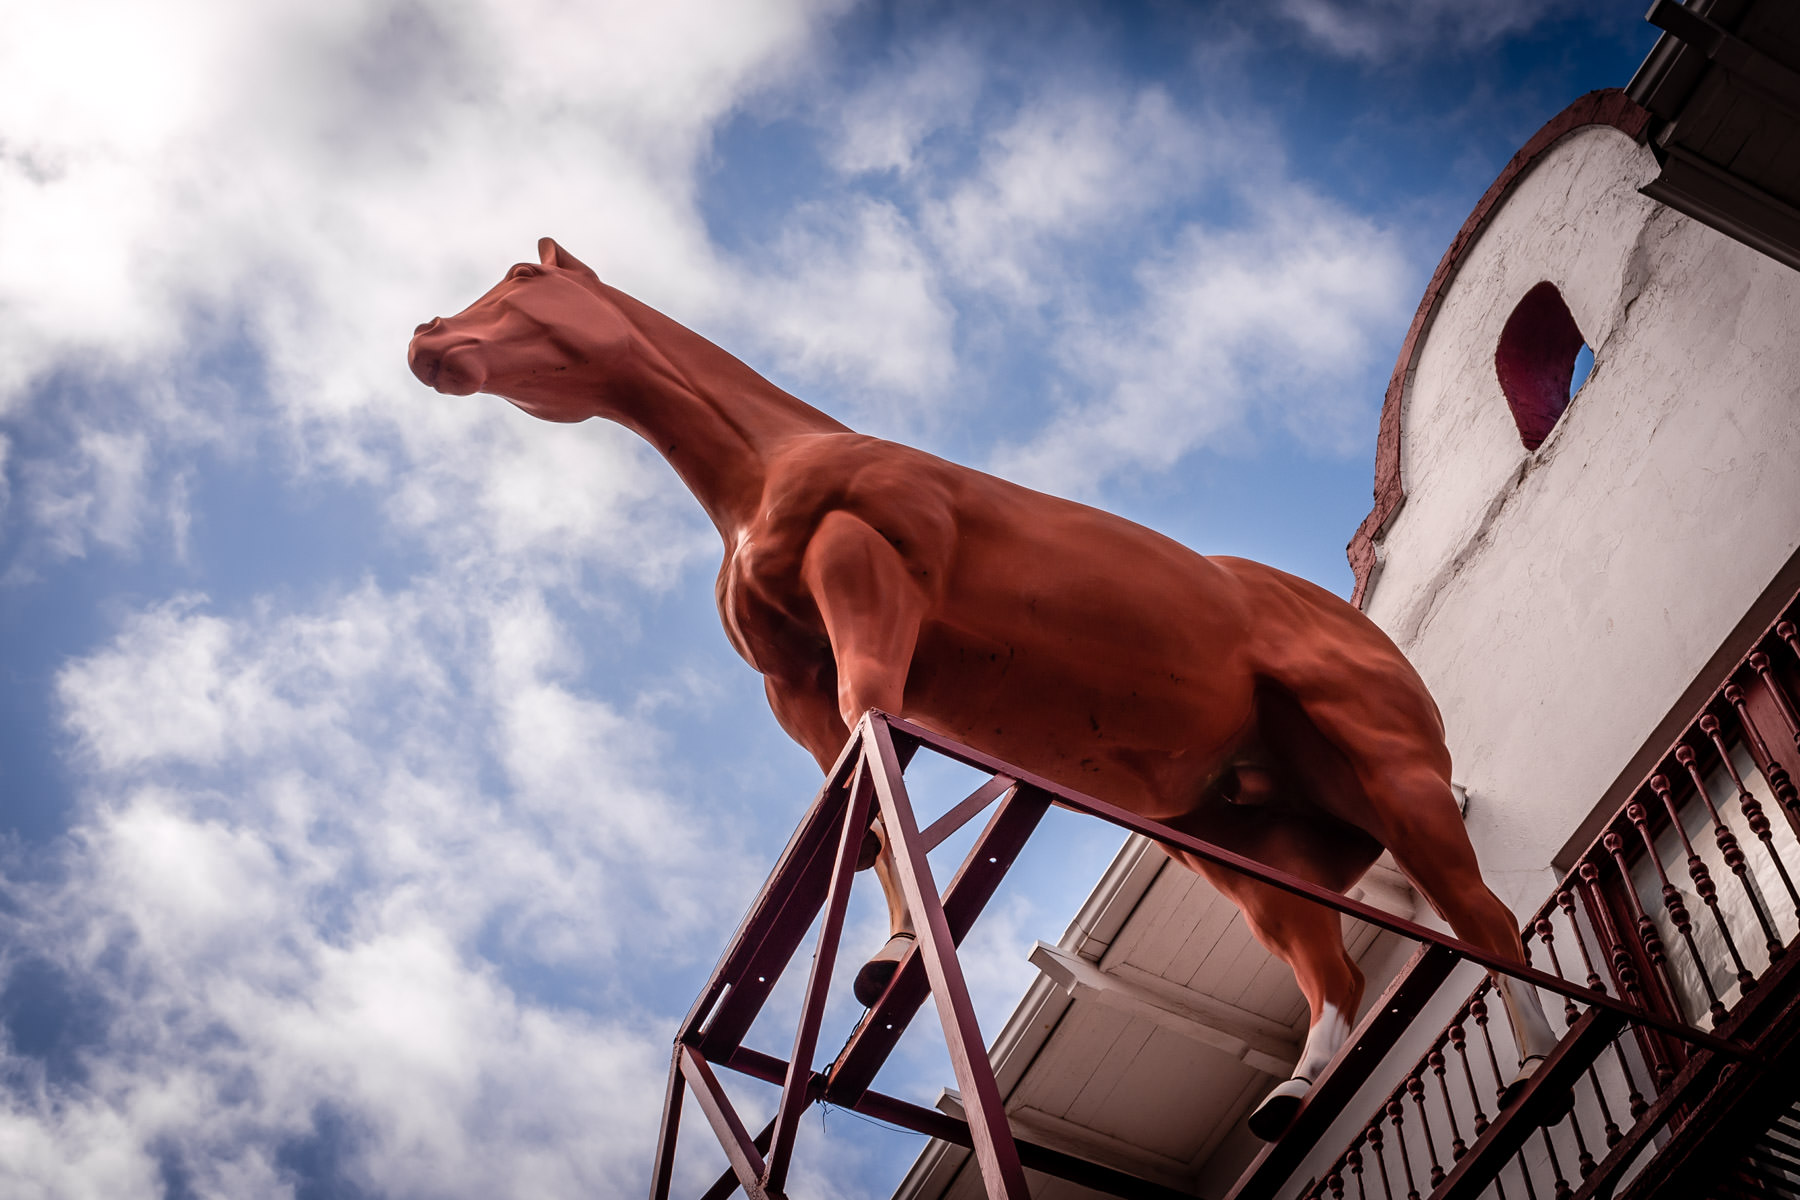 A giant fiberglass horse atop a building in Fort Worth, Texas' Historic Stockyards.